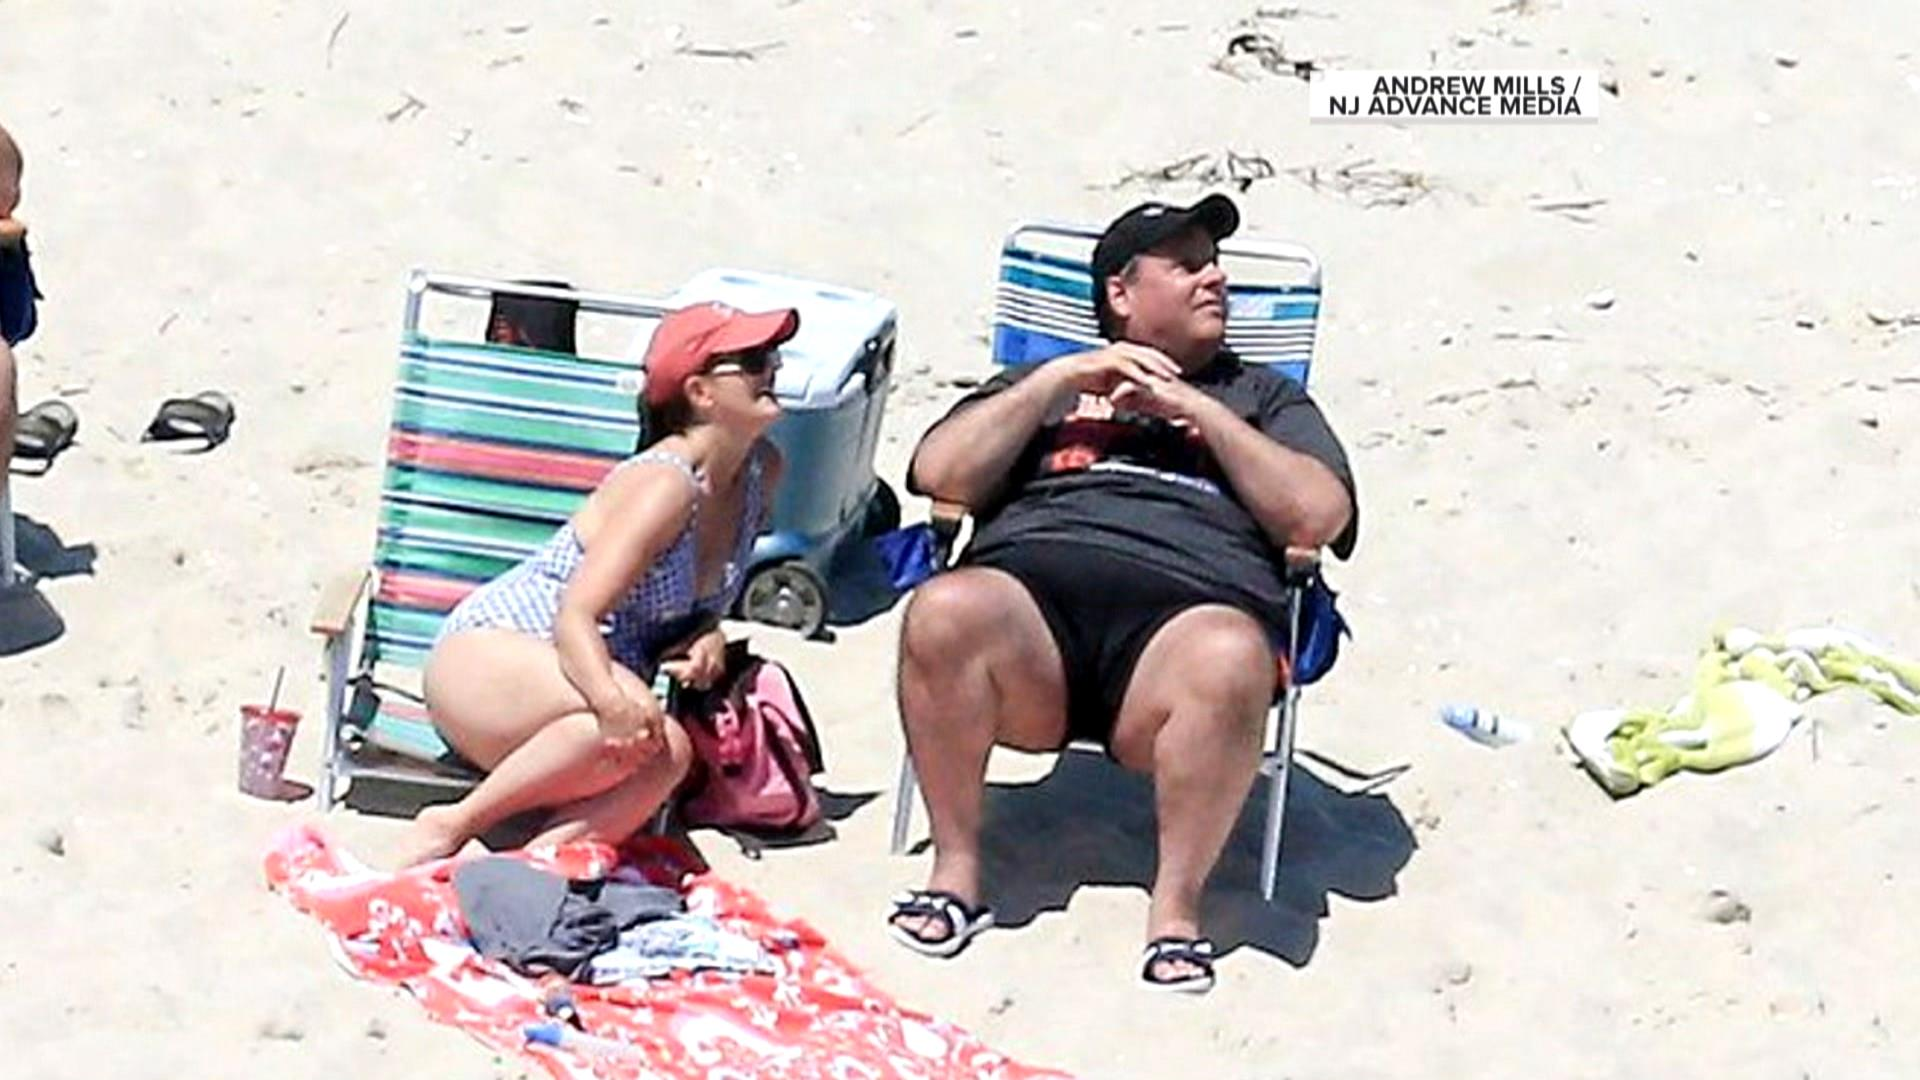 N.J. Gov. Chris Christie Pushes Back After Being Spotted on Beach Closed by Government Shutdown